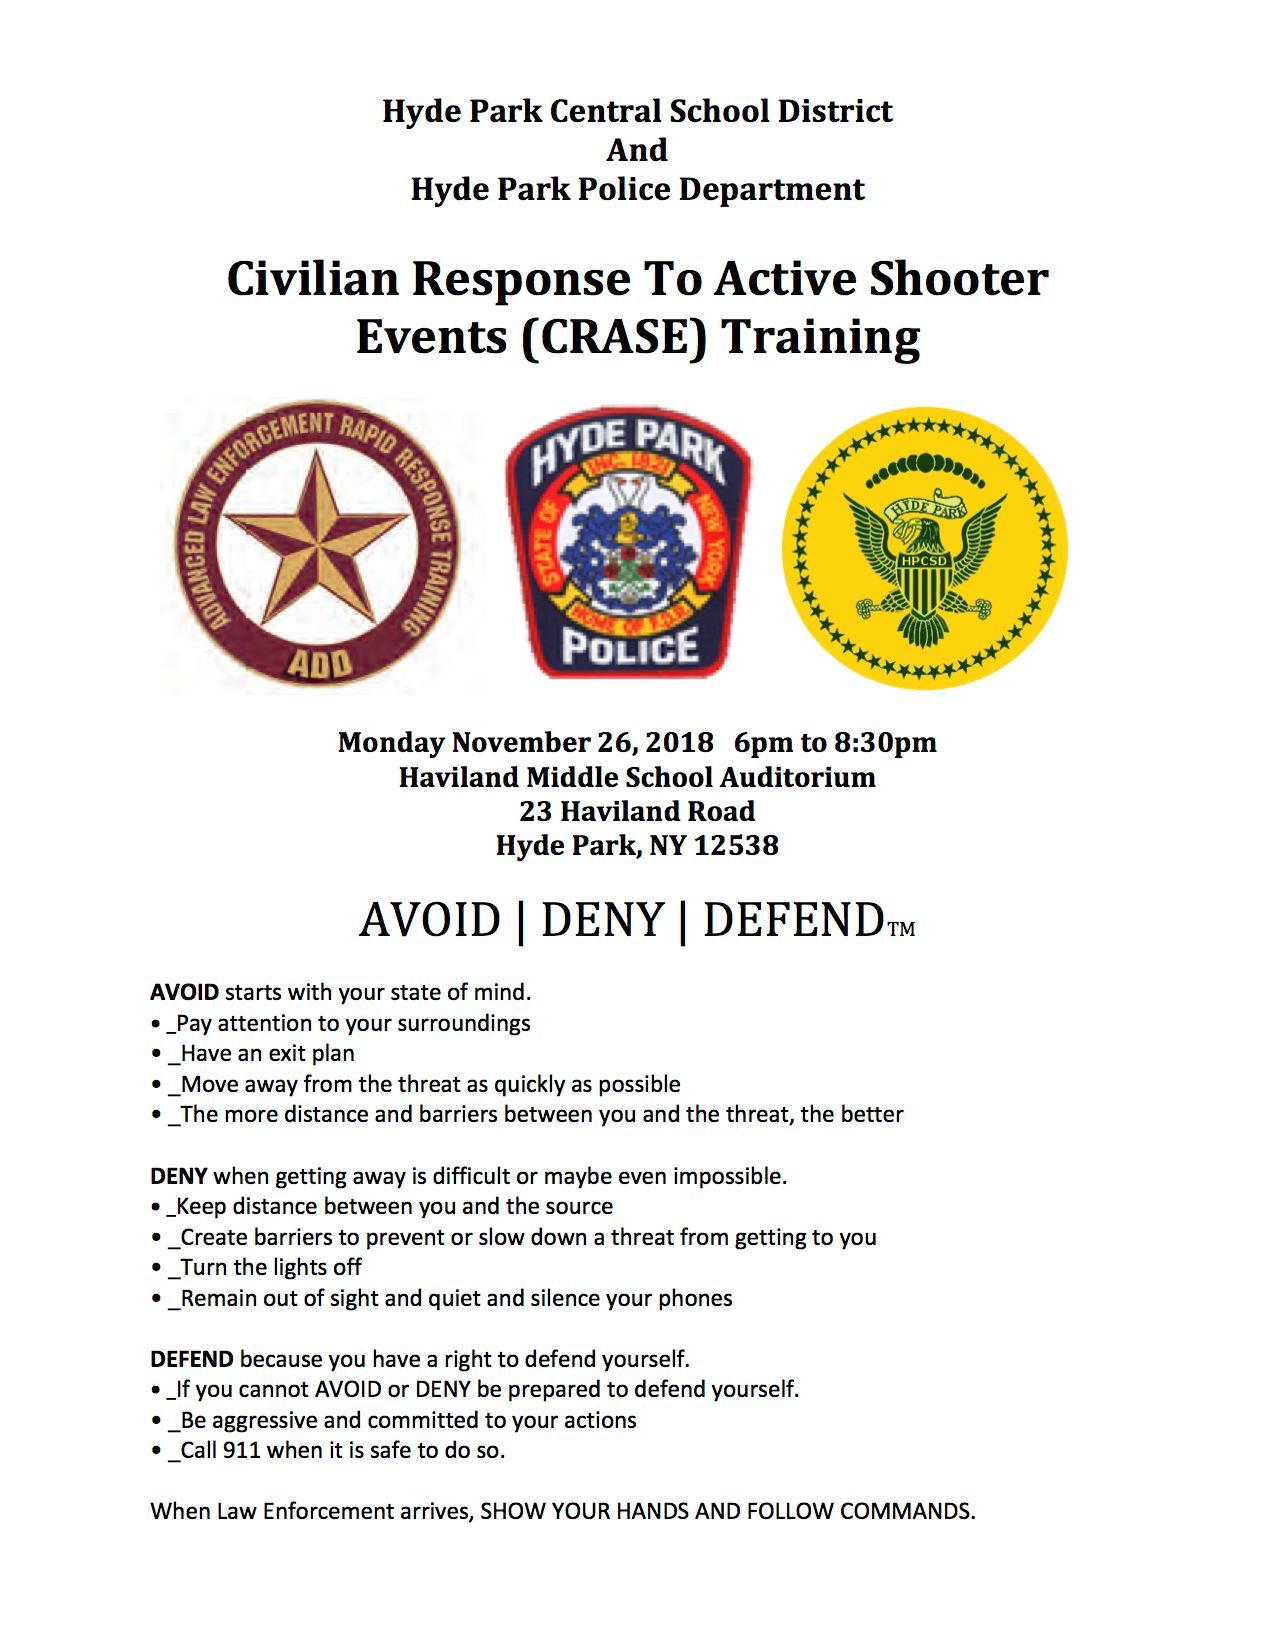 Civilian Response To Active Shooter Events (CRASE) Training Flyer